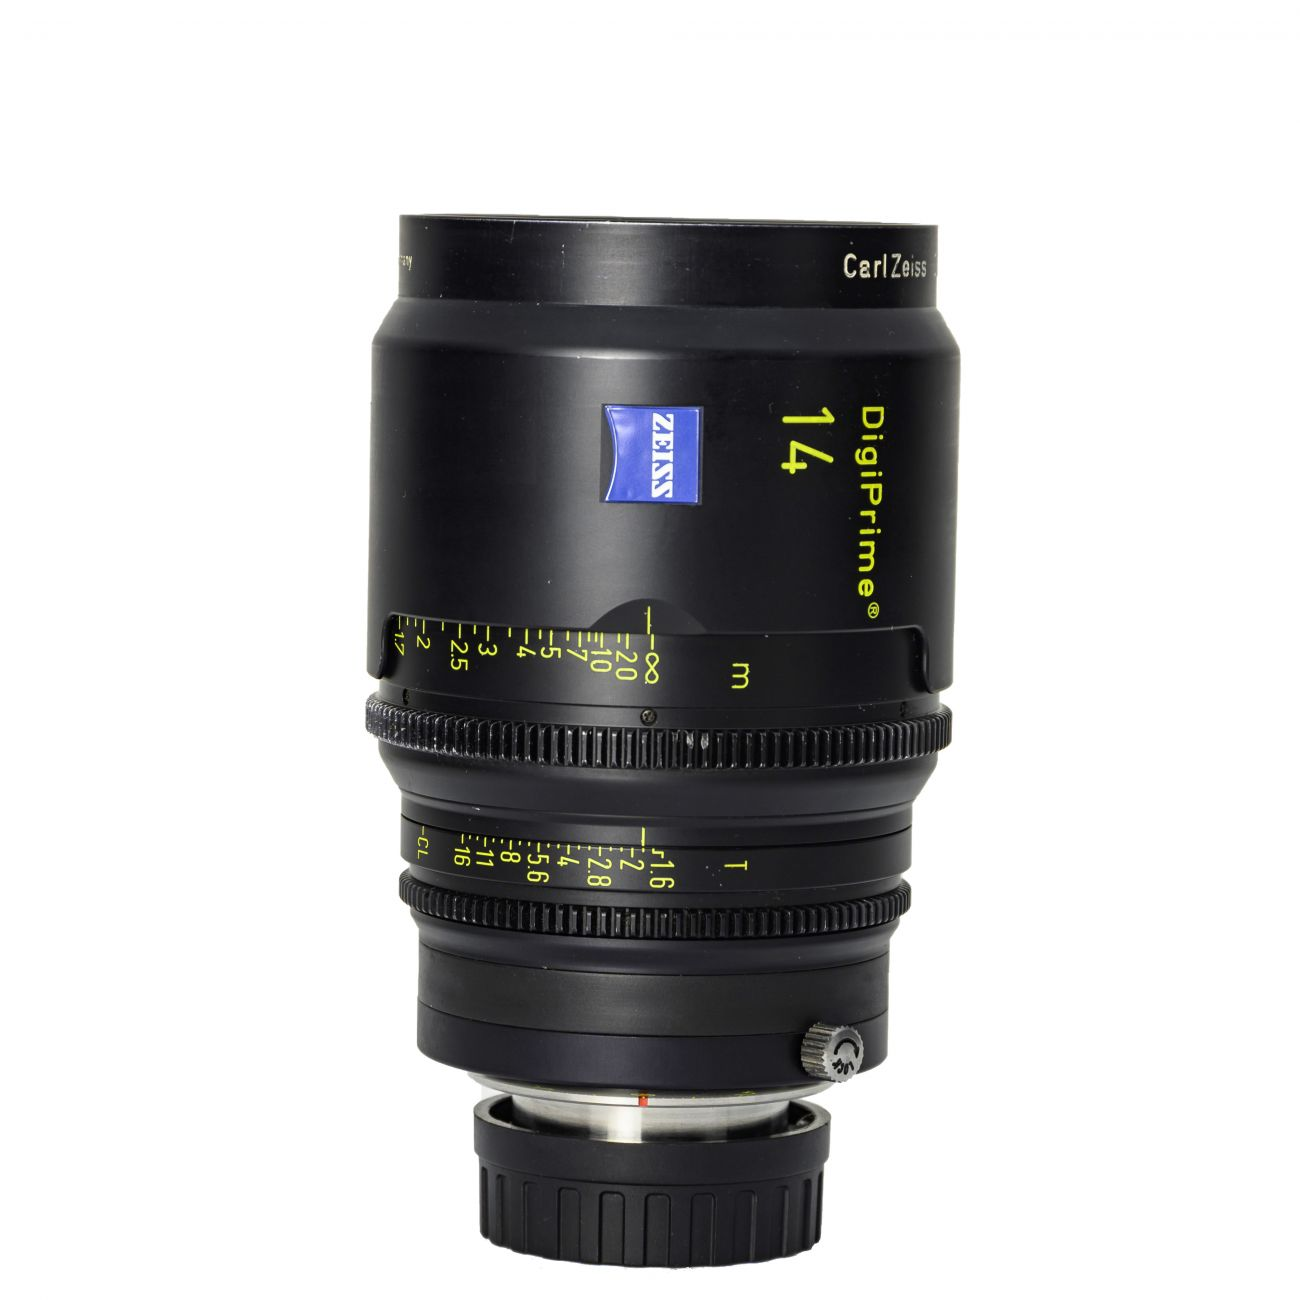 14mm lens Carl Zeiss DigiPrime Distagon T1.6 B4-mount